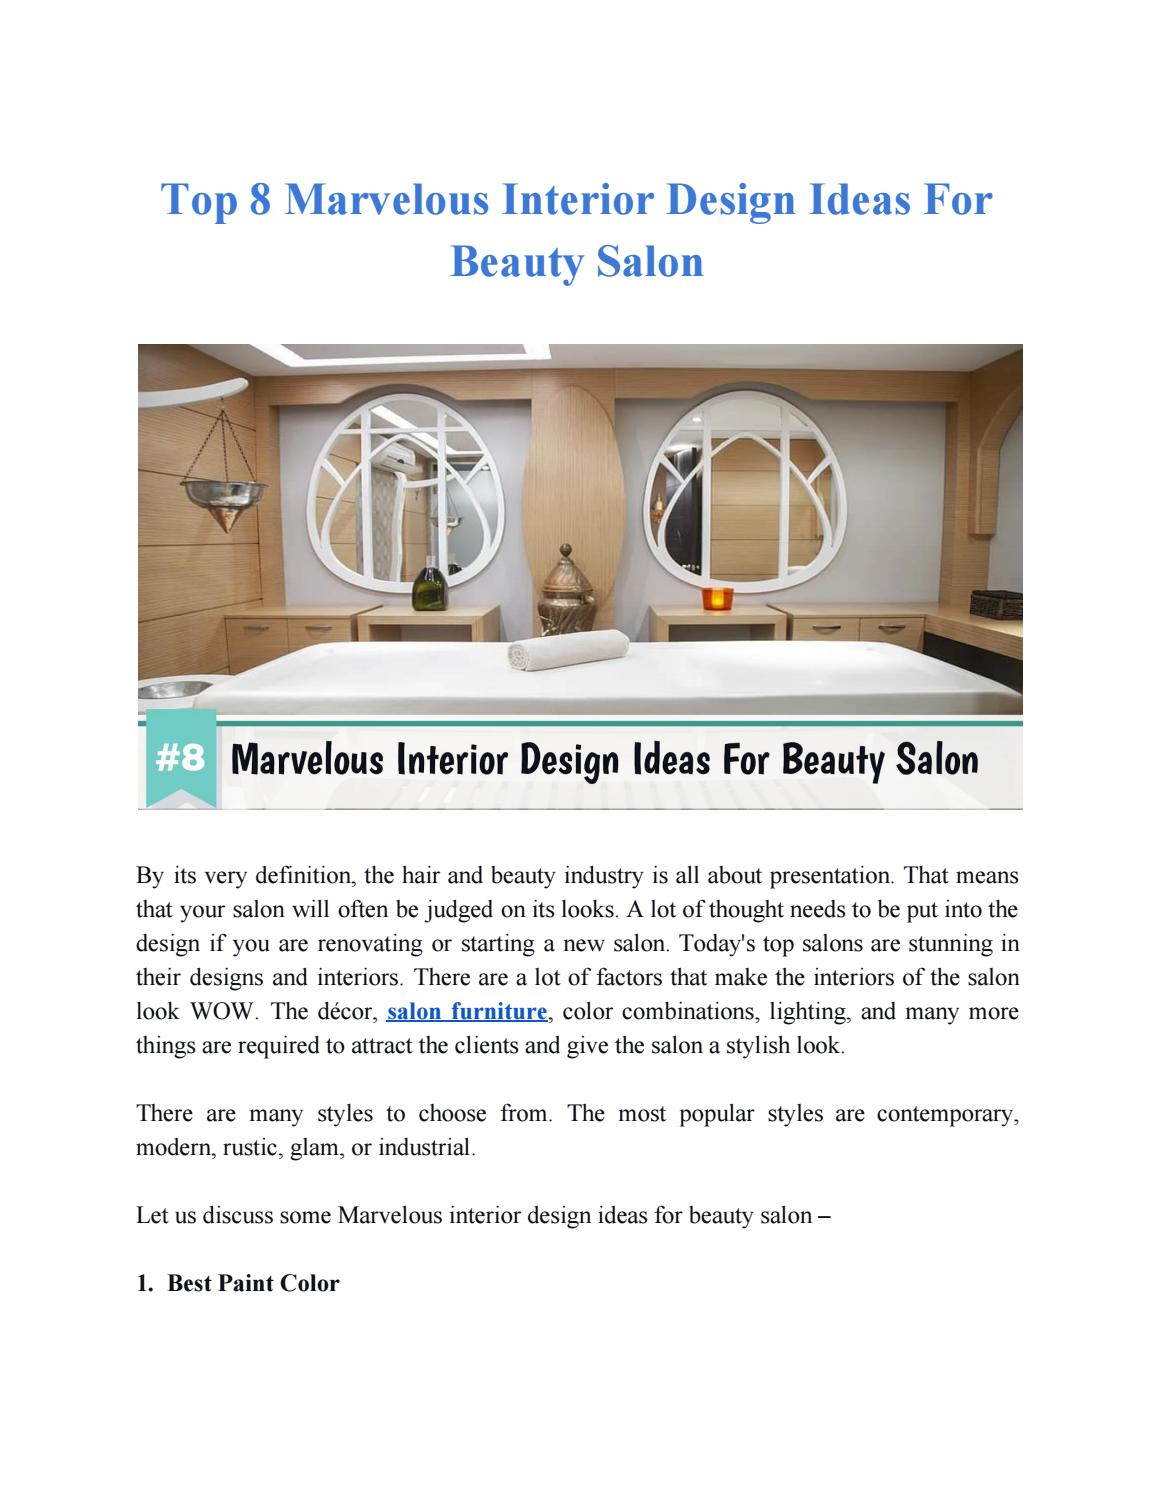 Top 8 Marvelous Interior Design Ideas For Beauty Salon By Paulmatthes Issuu